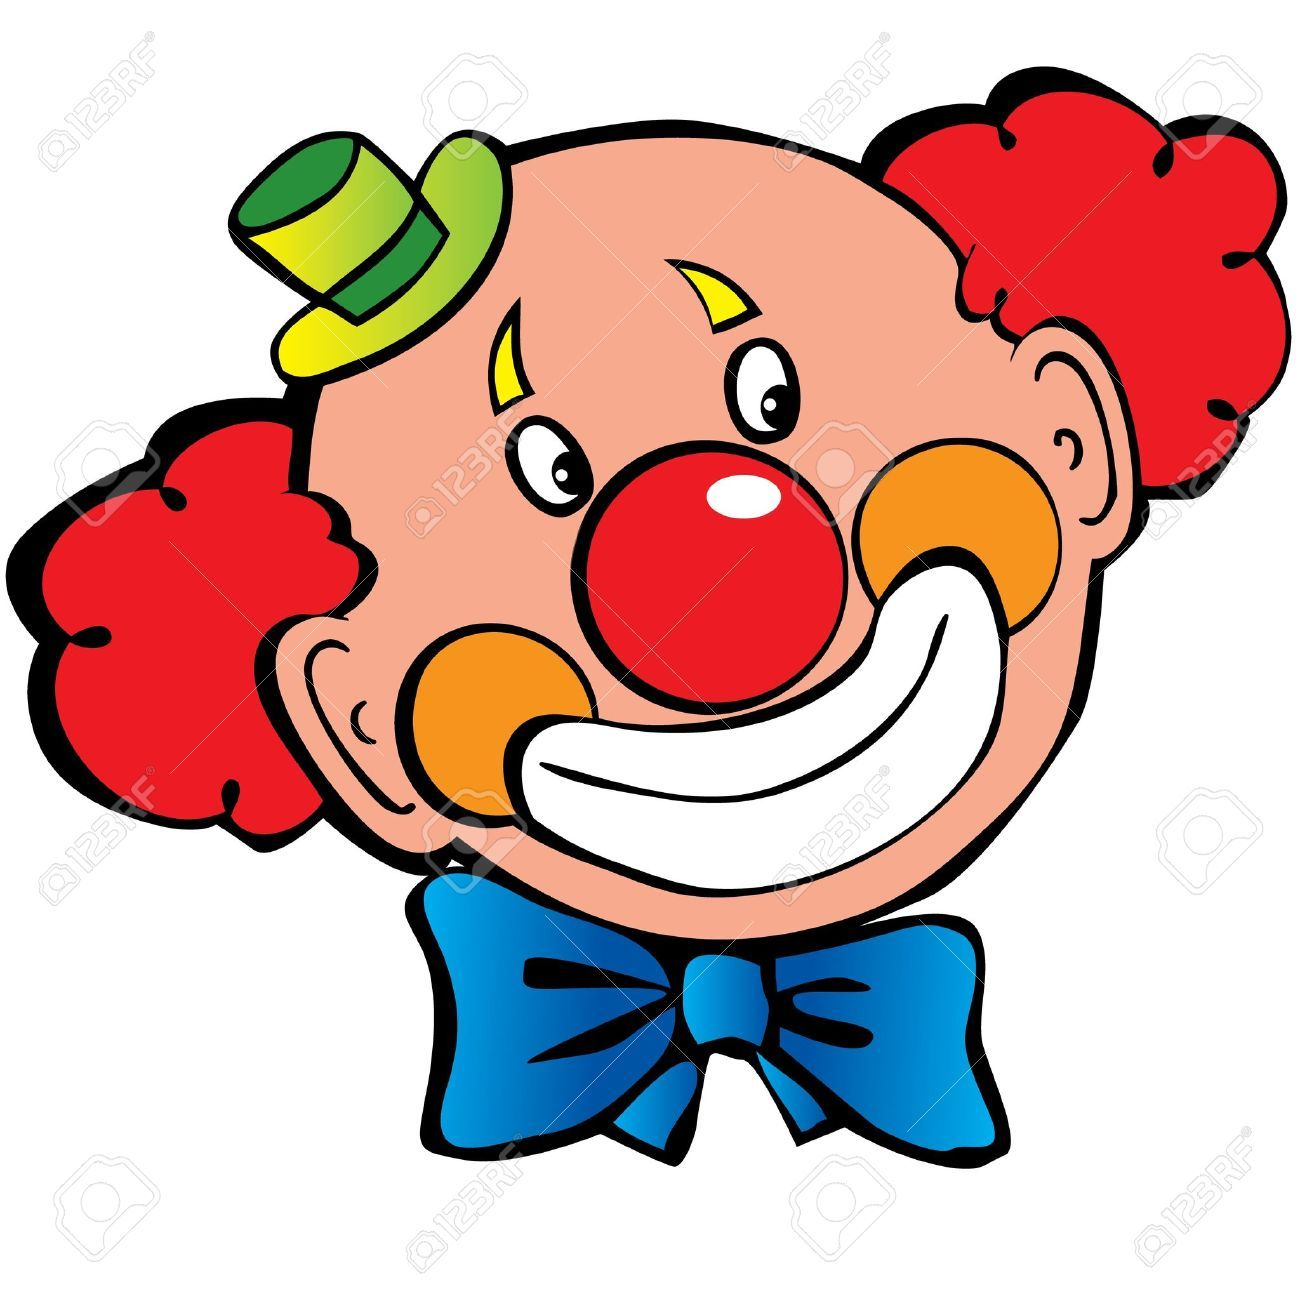 1300x1300 Image Clown Face Clipart 9 Free Clown Clipart 1 Page